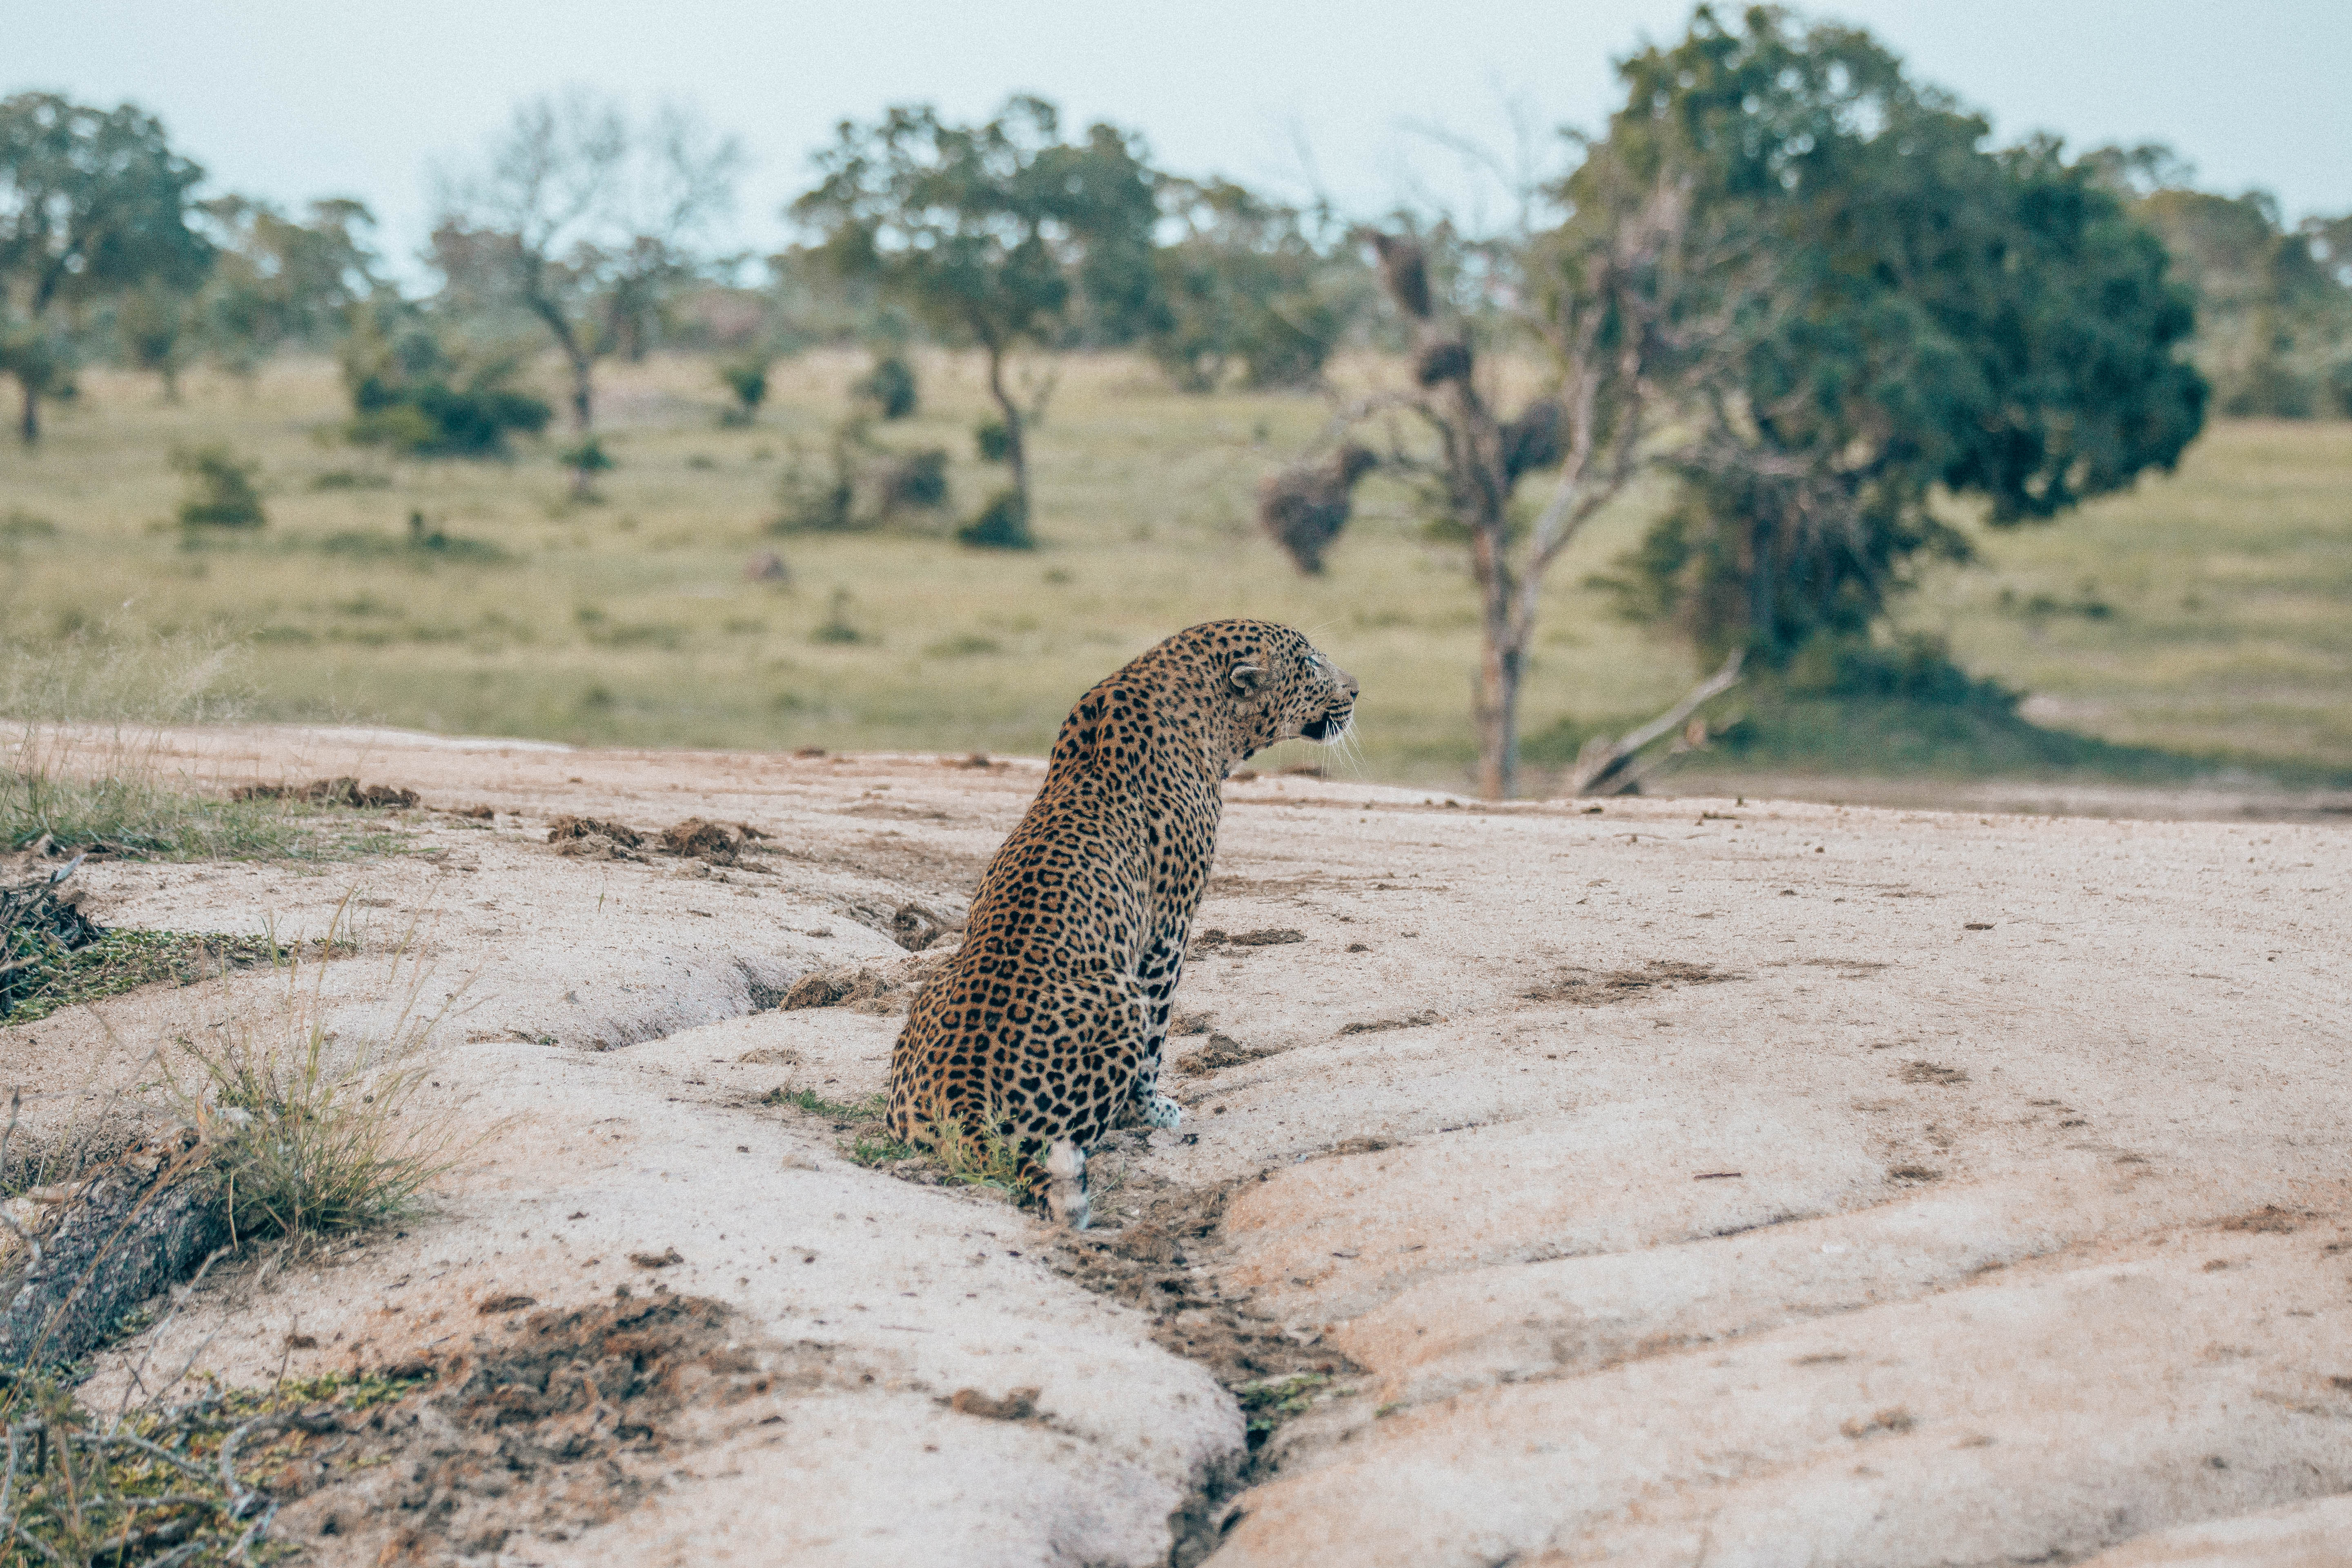 The leopard waits as the sun sets behind him.